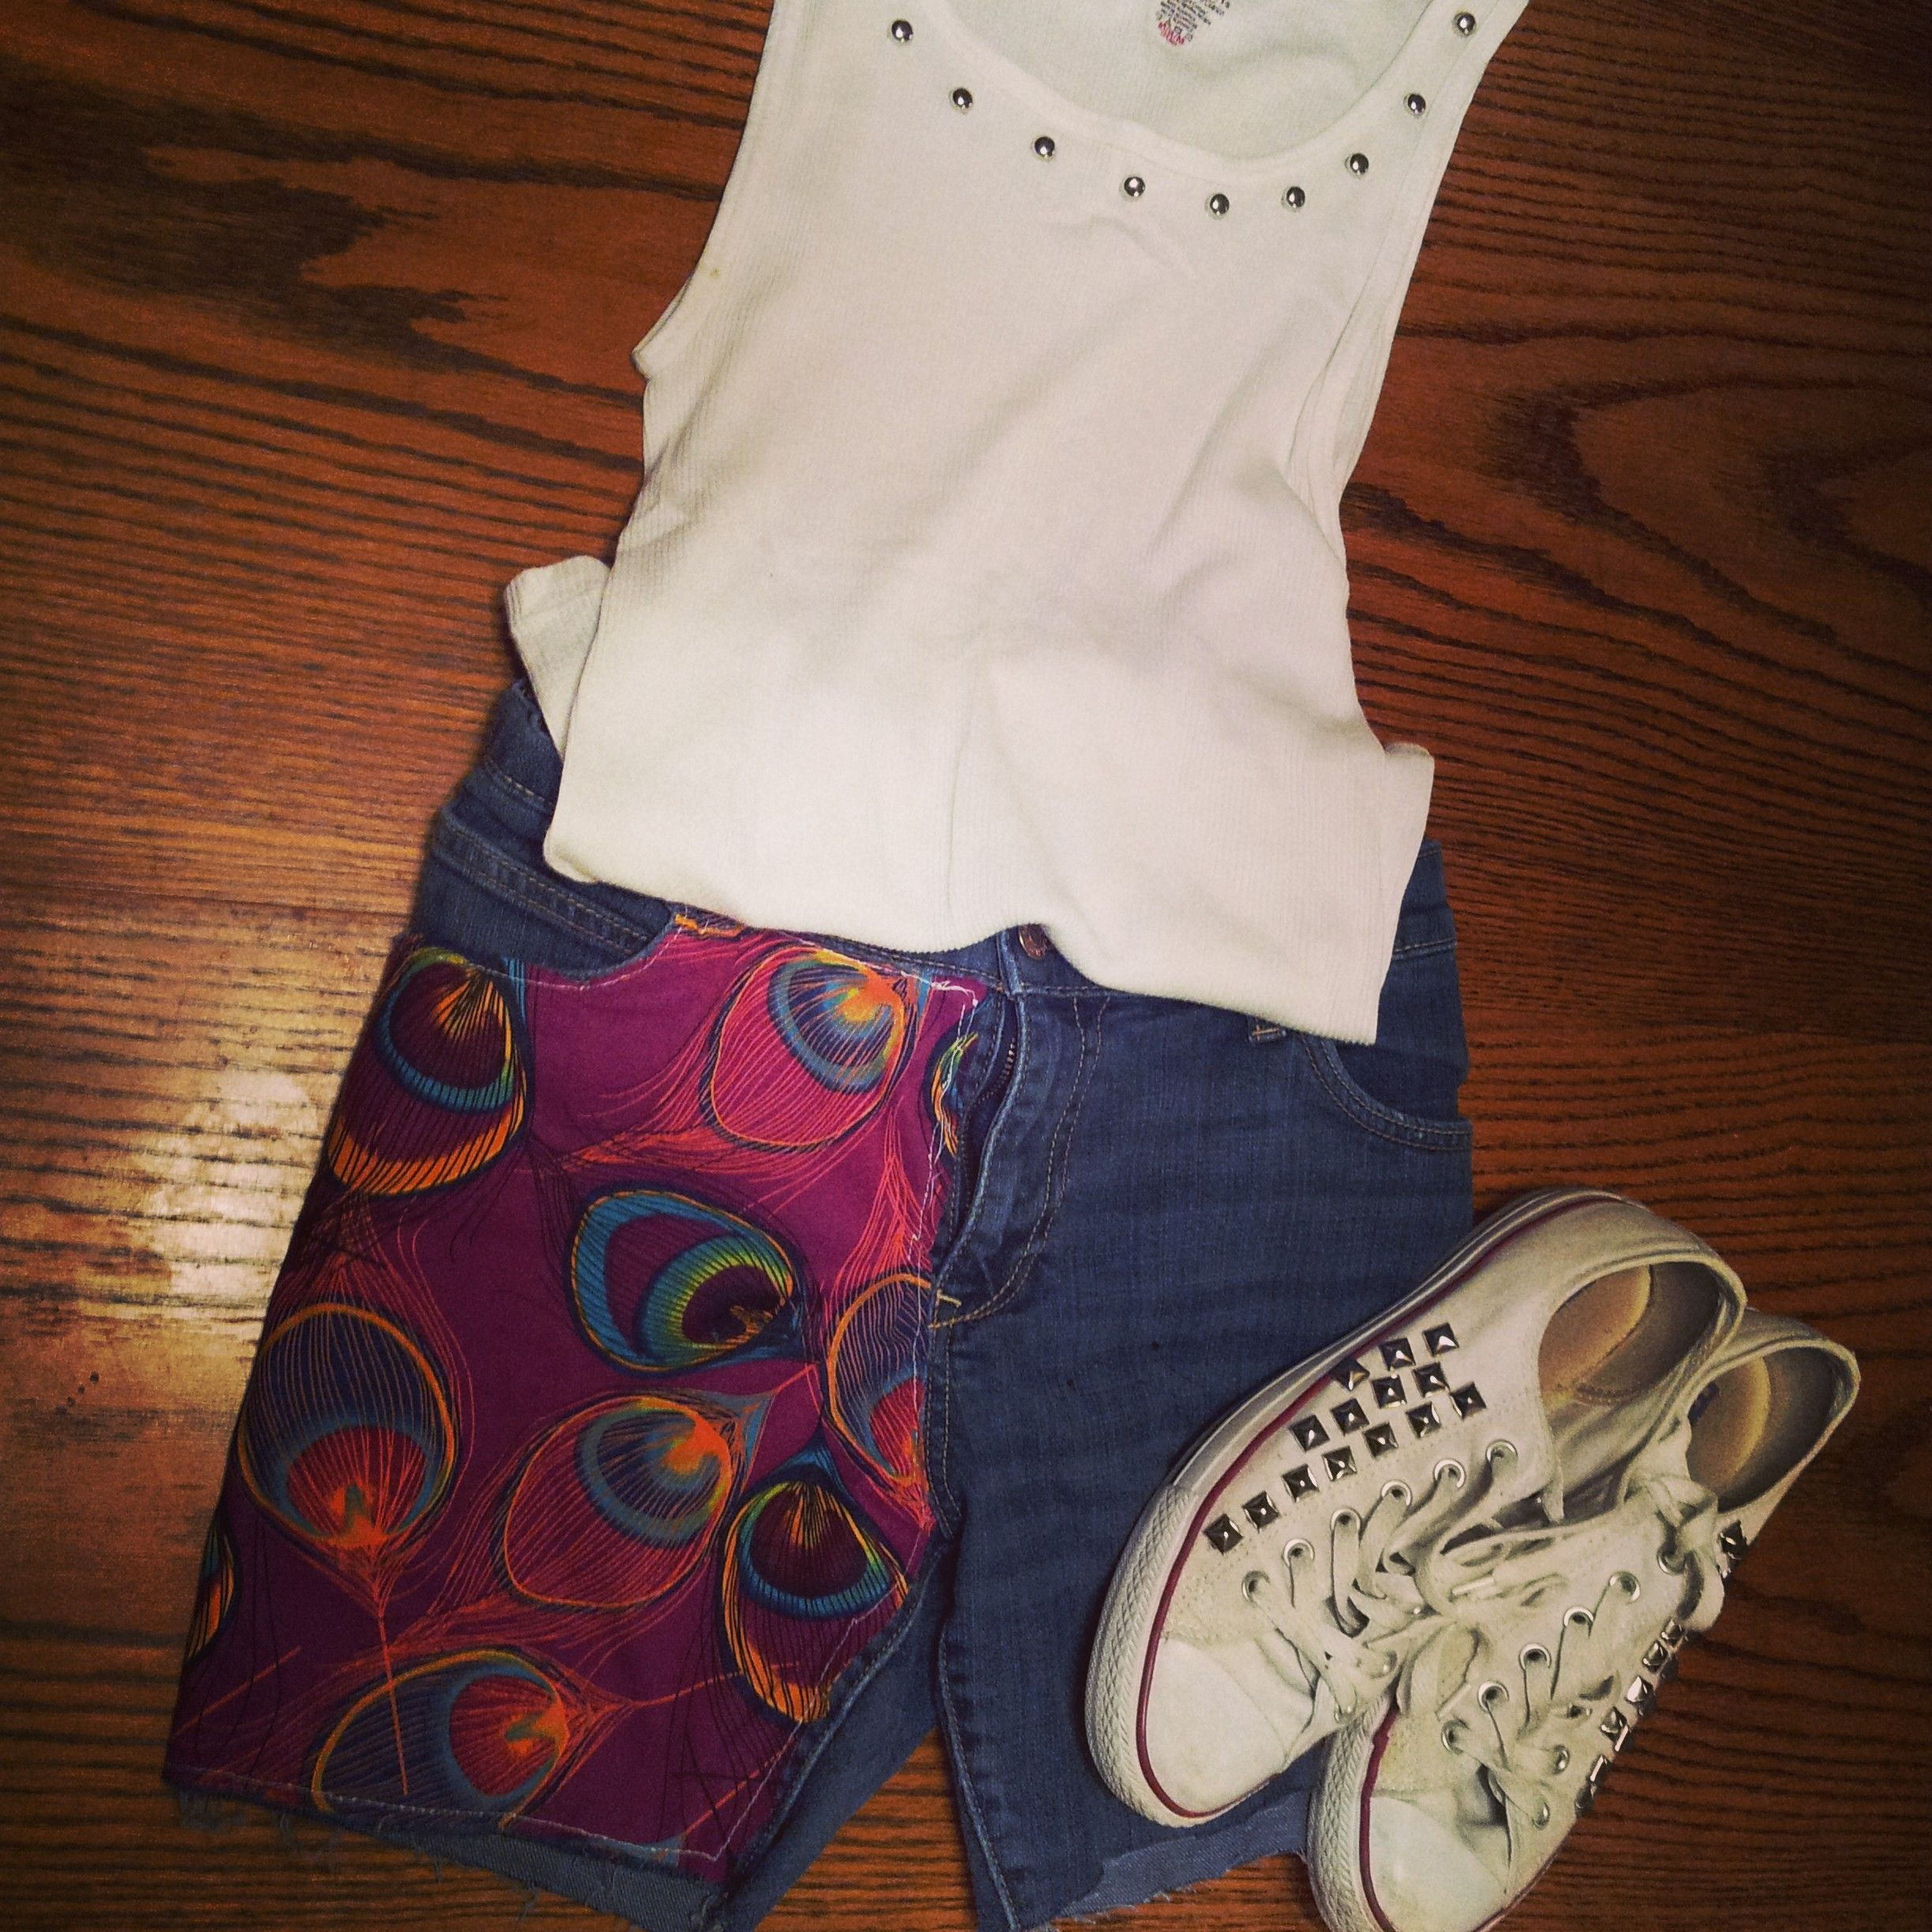 Bright vibrant purple peacock feather fabric machine sewn into front panel of jean shorts $35 studded beater tank top with studded white converse